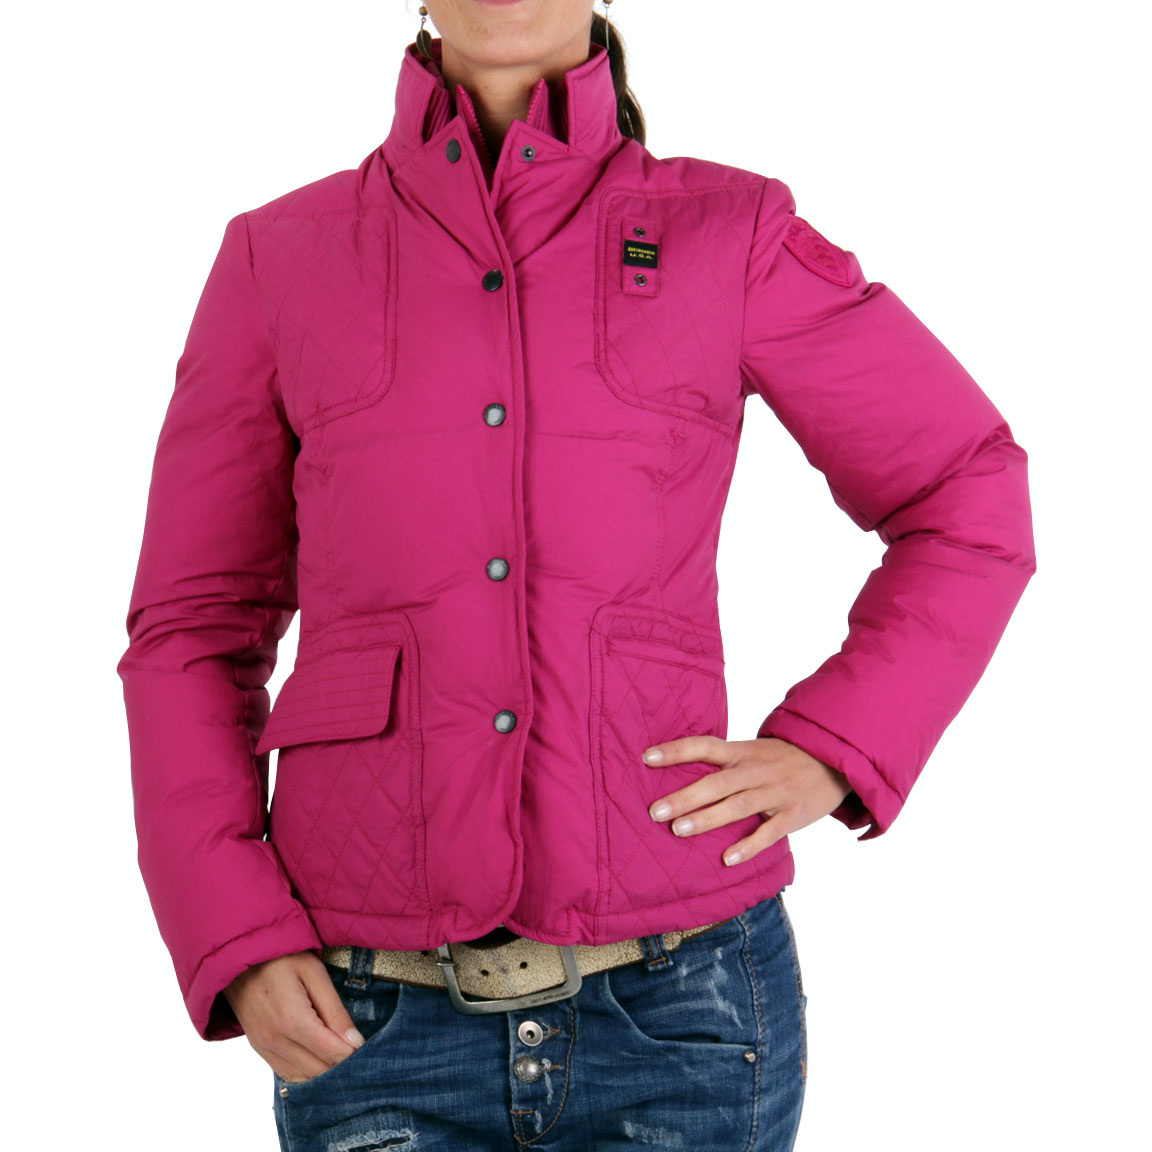 blauer usa damen winter daunen jacke pink bld0345 ebay. Black Bedroom Furniture Sets. Home Design Ideas